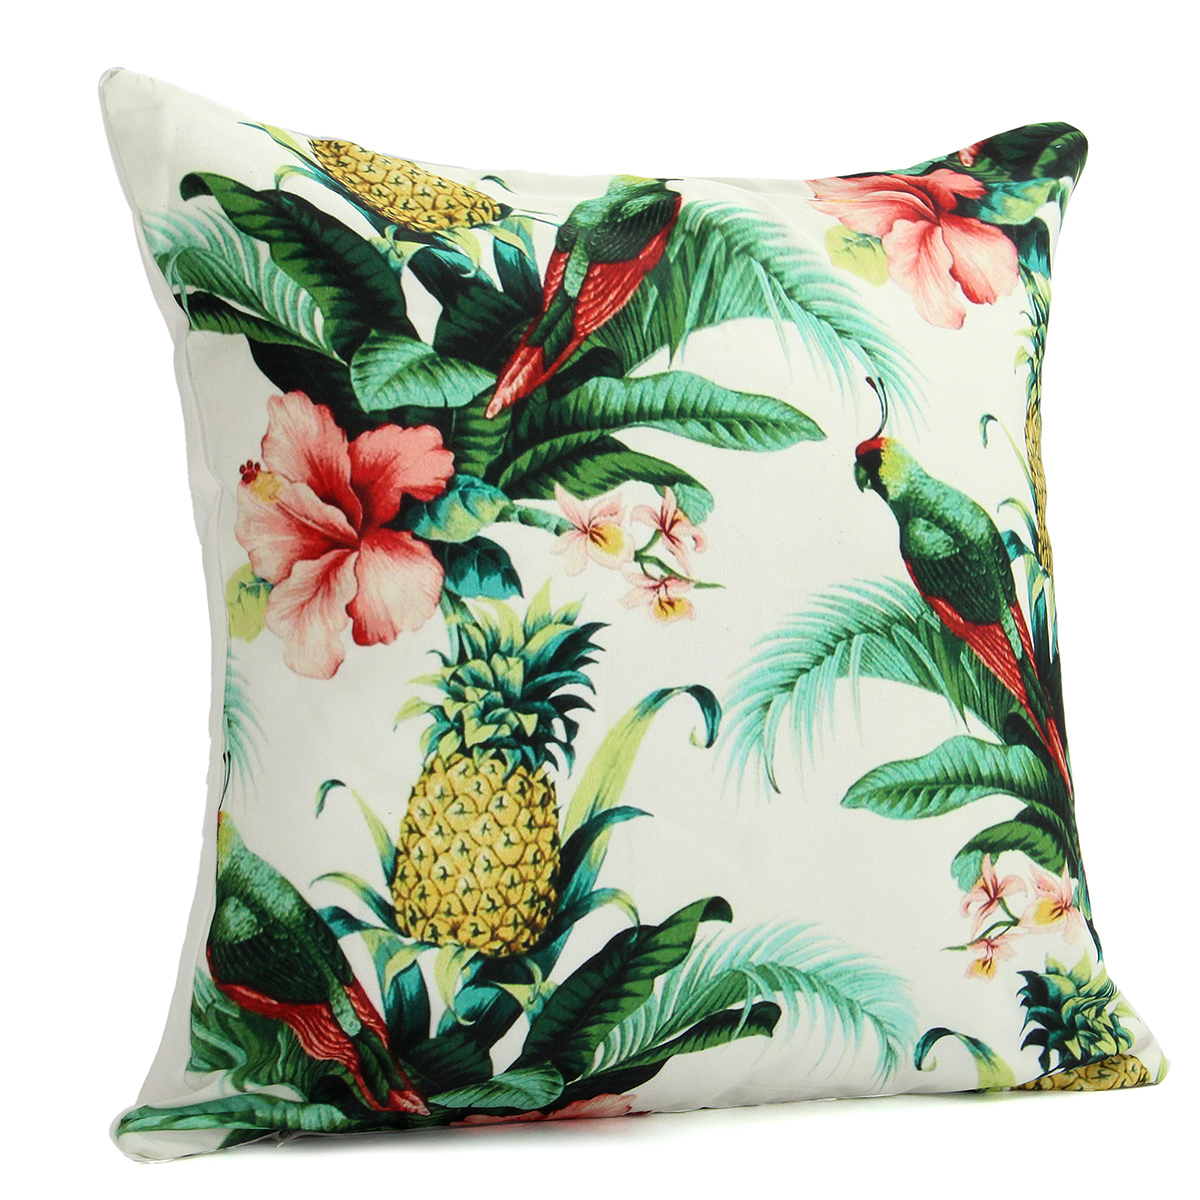 How To Wash Throw Pillow Cases : 45x45cm Pineapple and Parrot Canvas Chair Cushion Cover Throw Pillow Case Home Sofa Decor Alex NLD